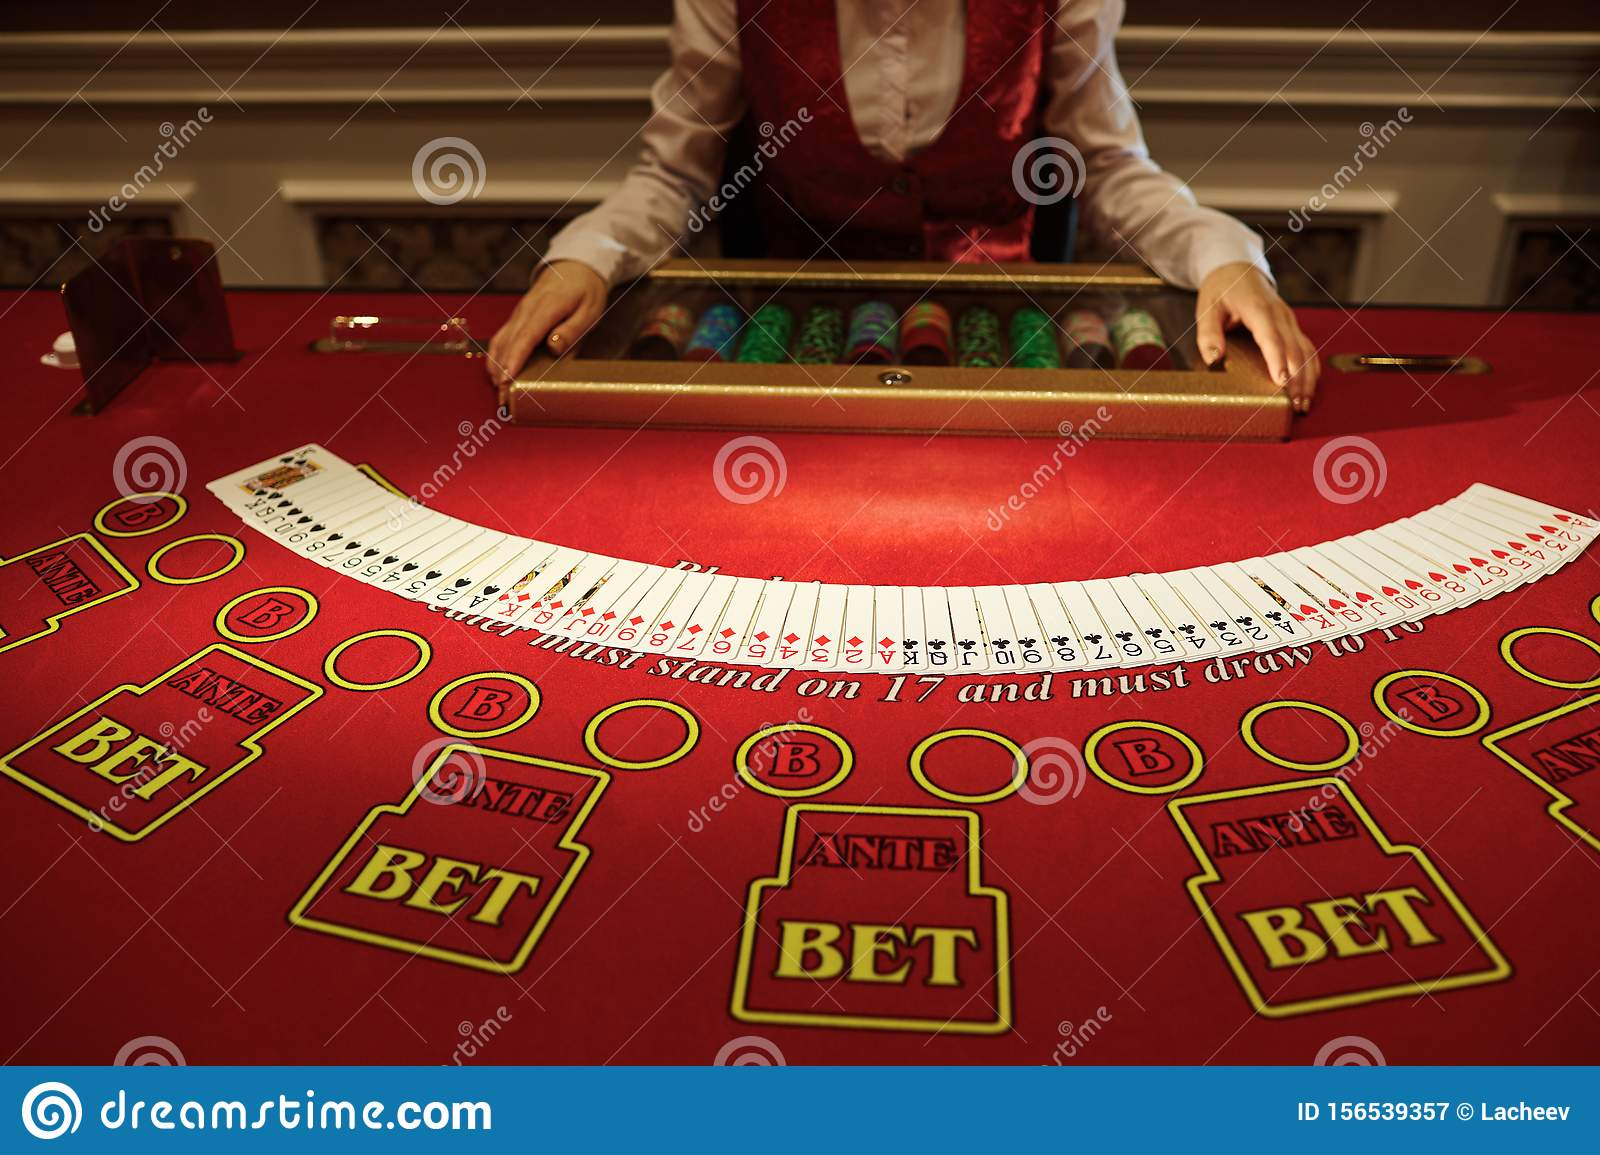 The Croupier In The Casino Does A Shuffle Of Cards Stock Image Image Of Background Game 156539357